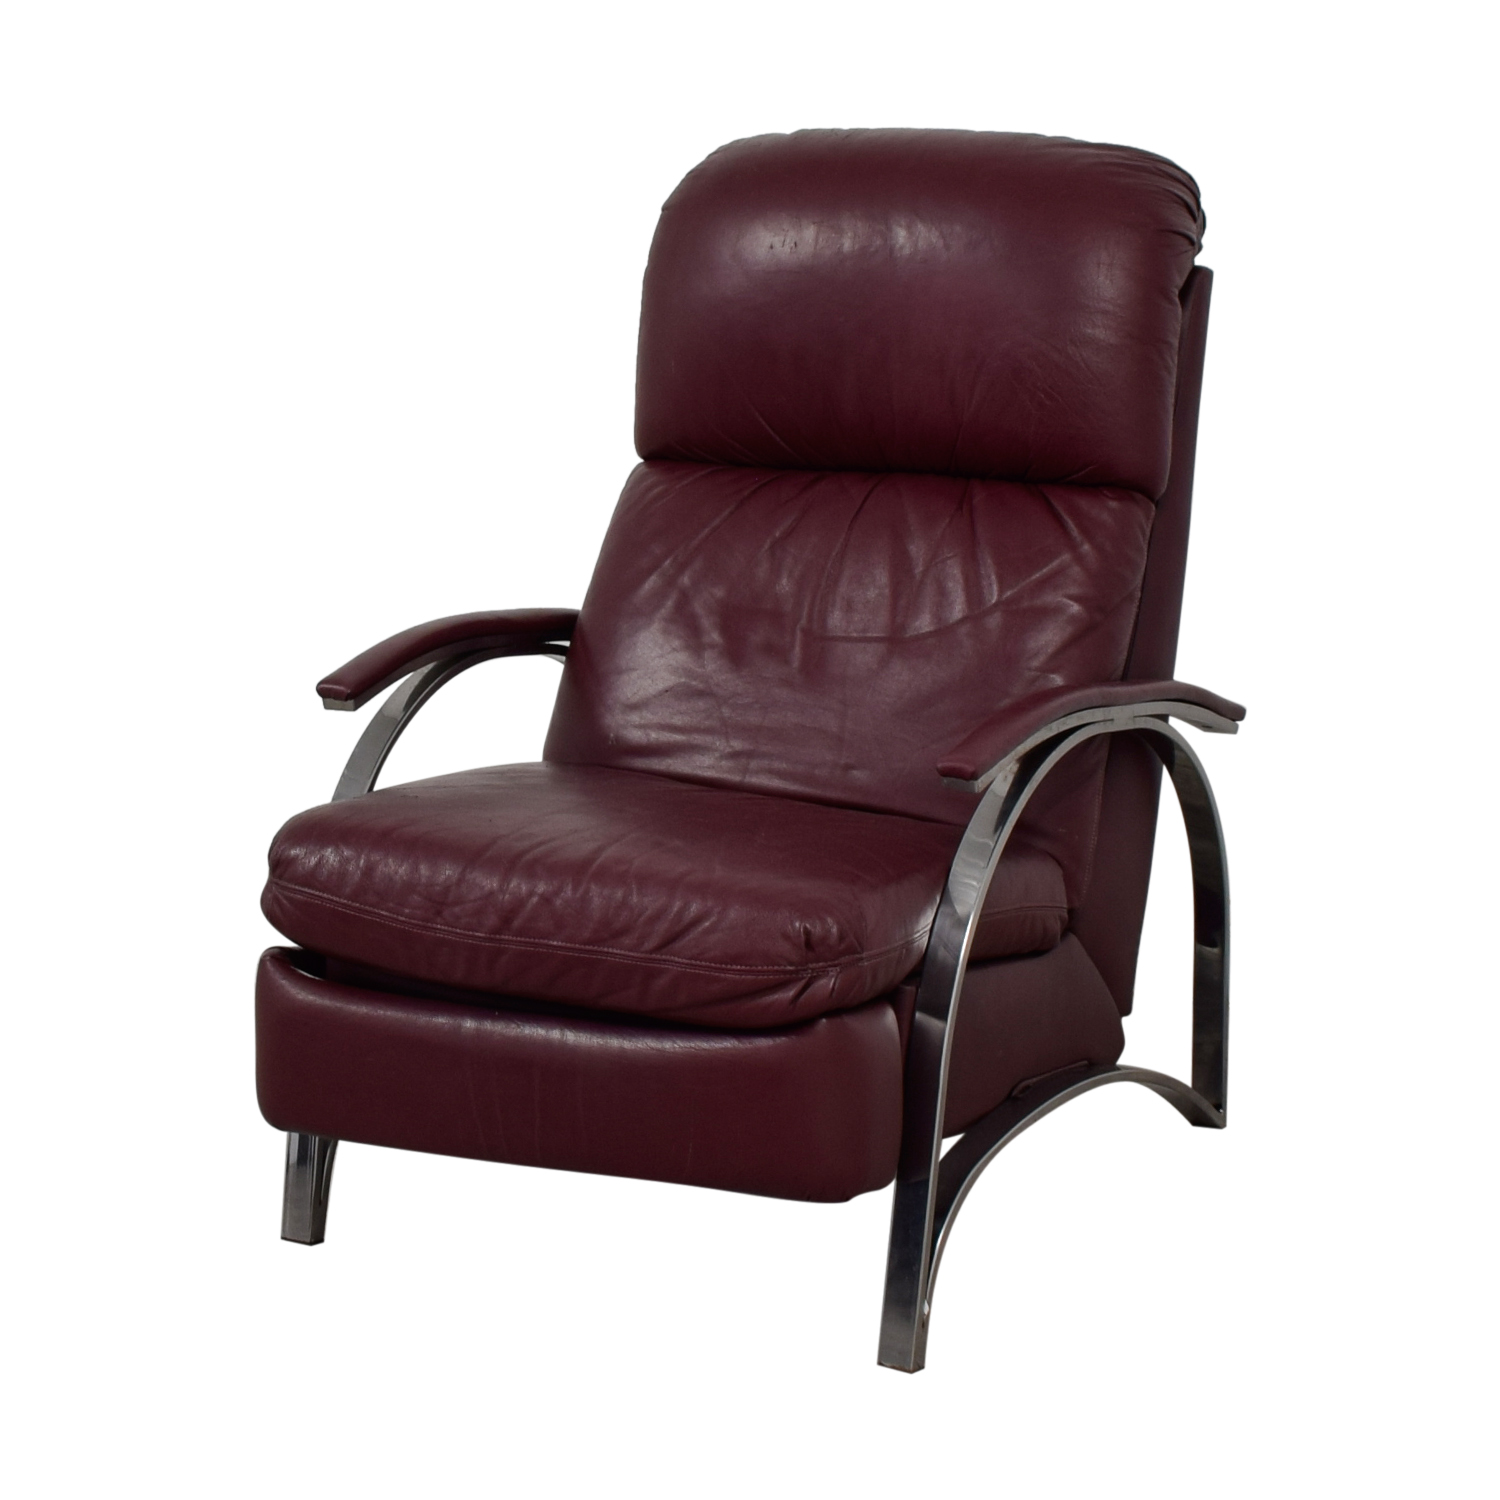 Burgundy Leather Recliner Chair for sale